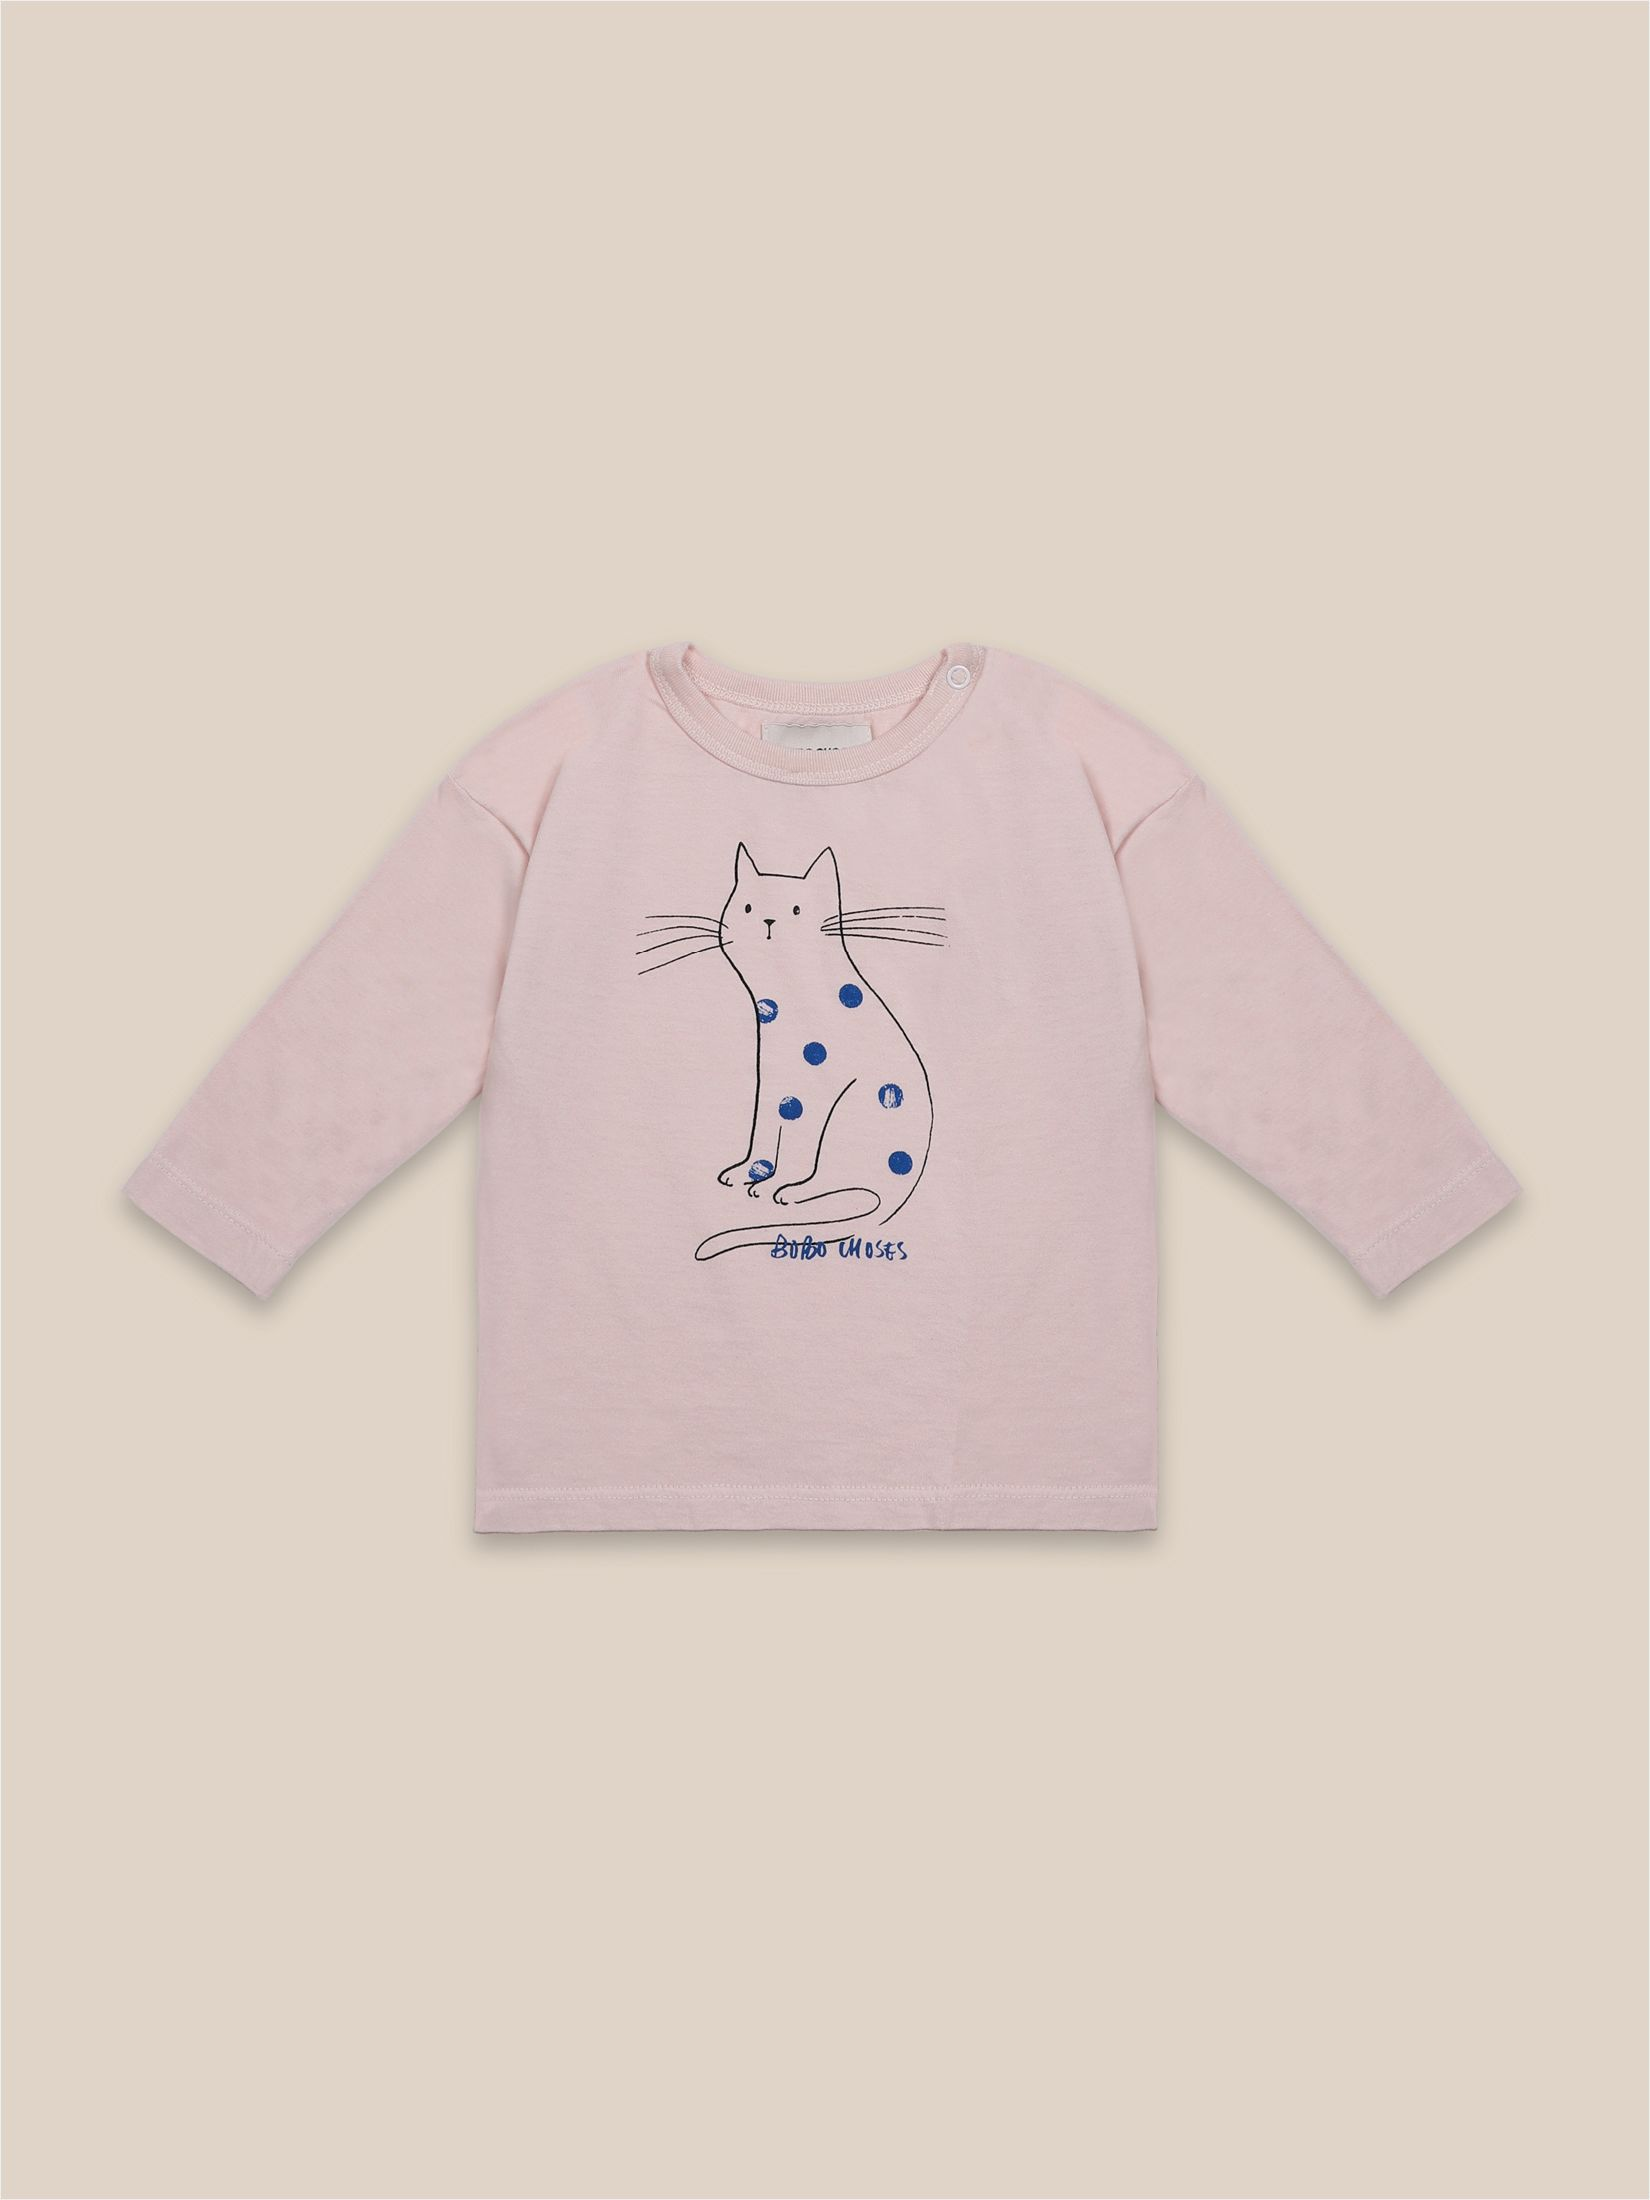 Bobo Choses - Cat Long Sleeve T-Shirt - Cream Tan